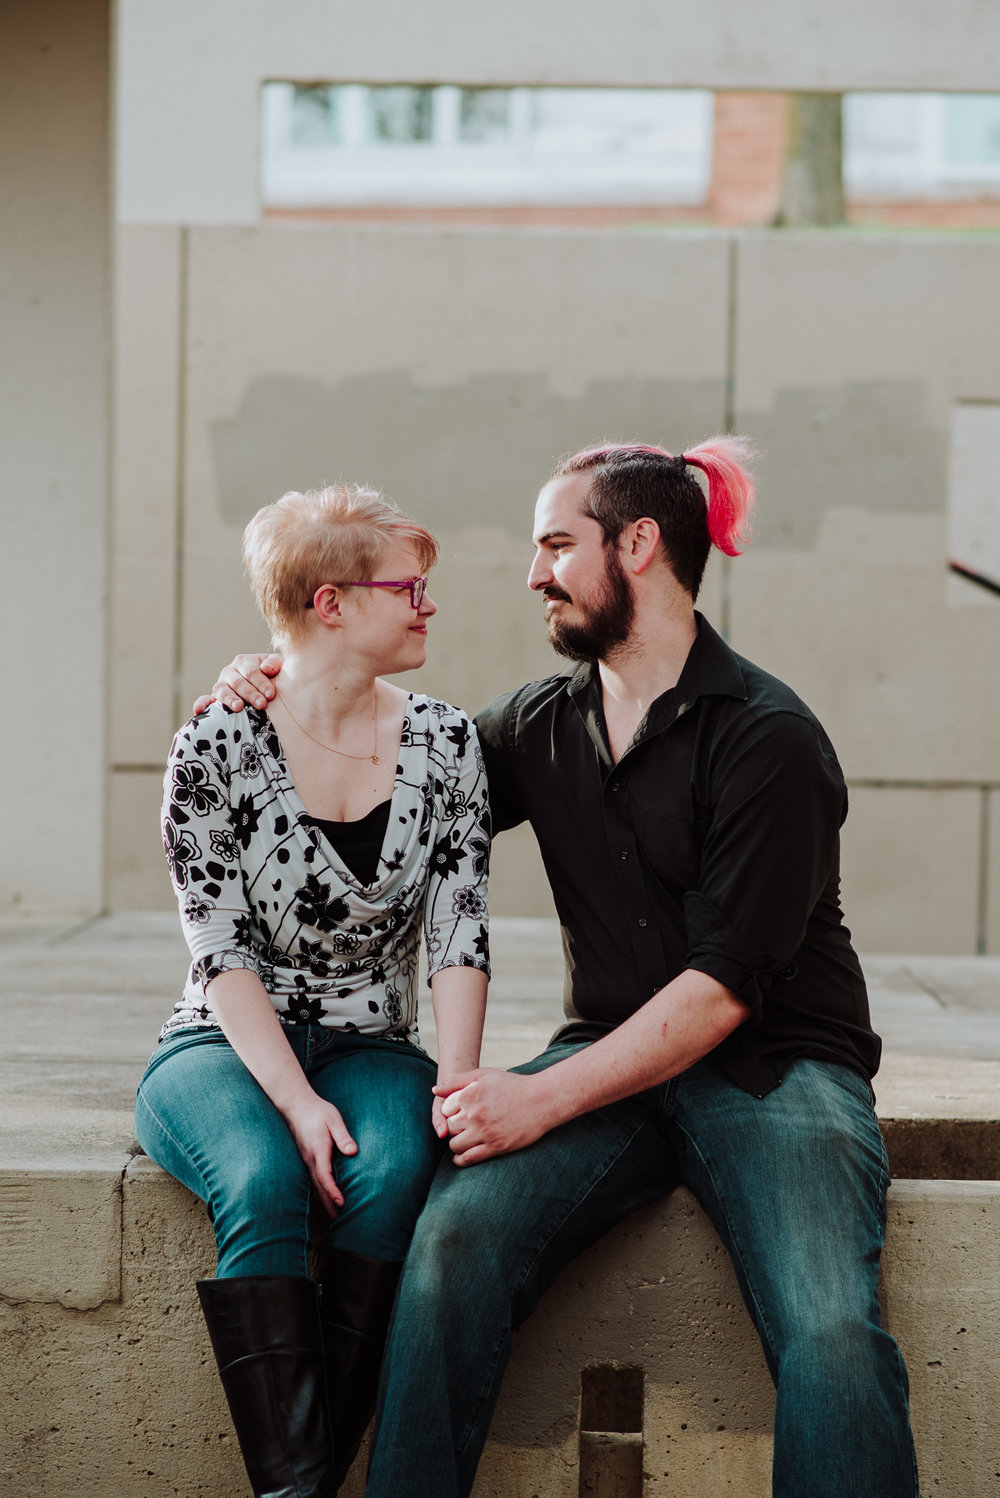 lume-photography-flint-engagement-session-13.jpg